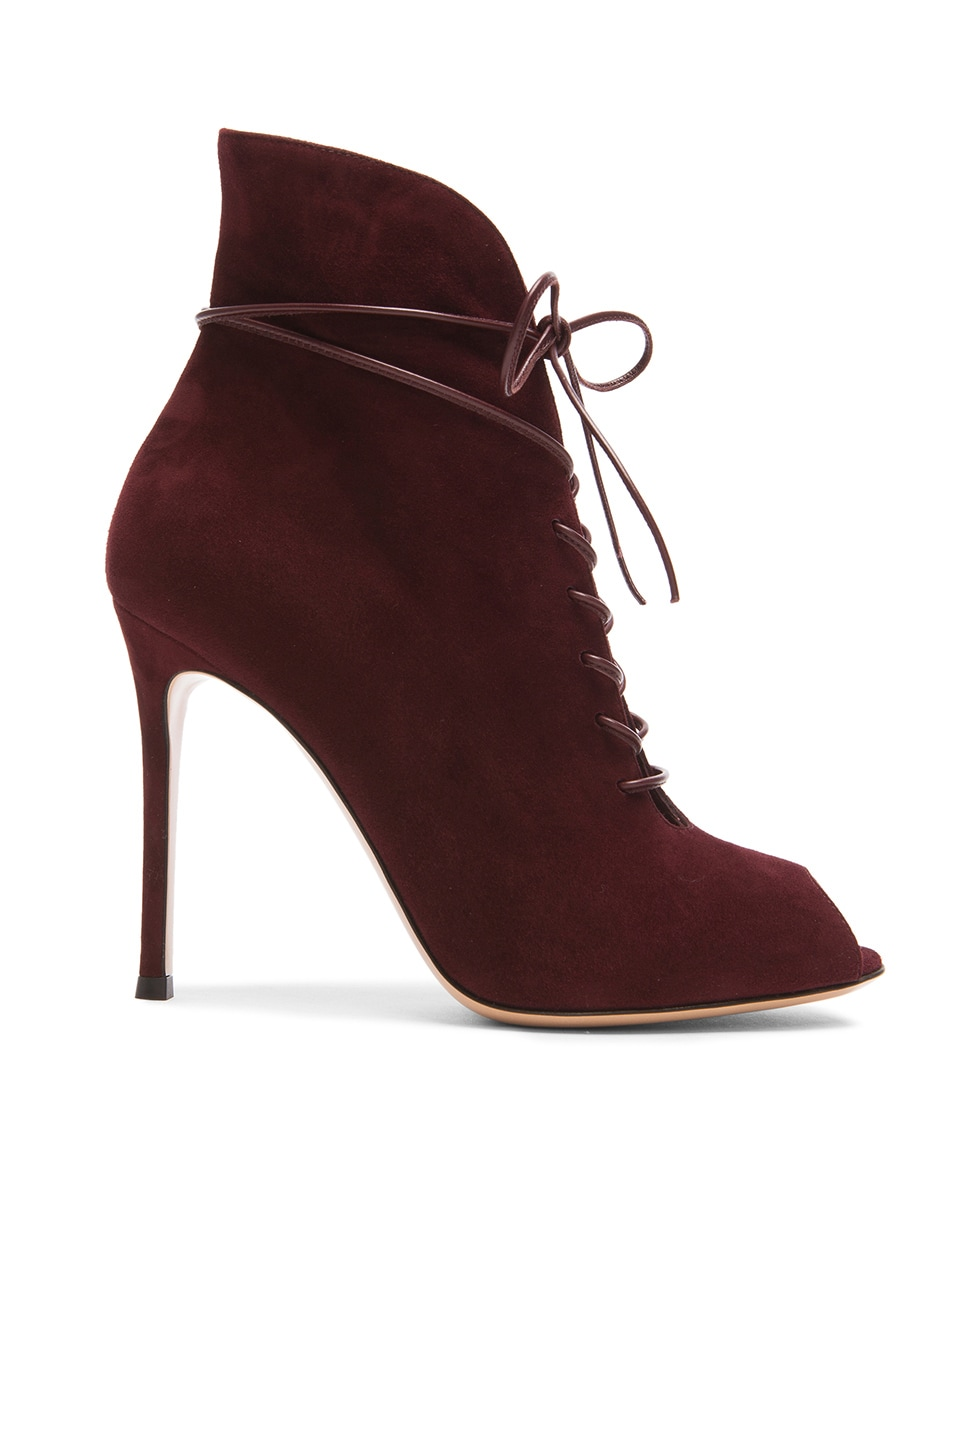 Image 1 of Gianvito Rossi Peep Toe Lace Up Suede Booties in Royal Suede